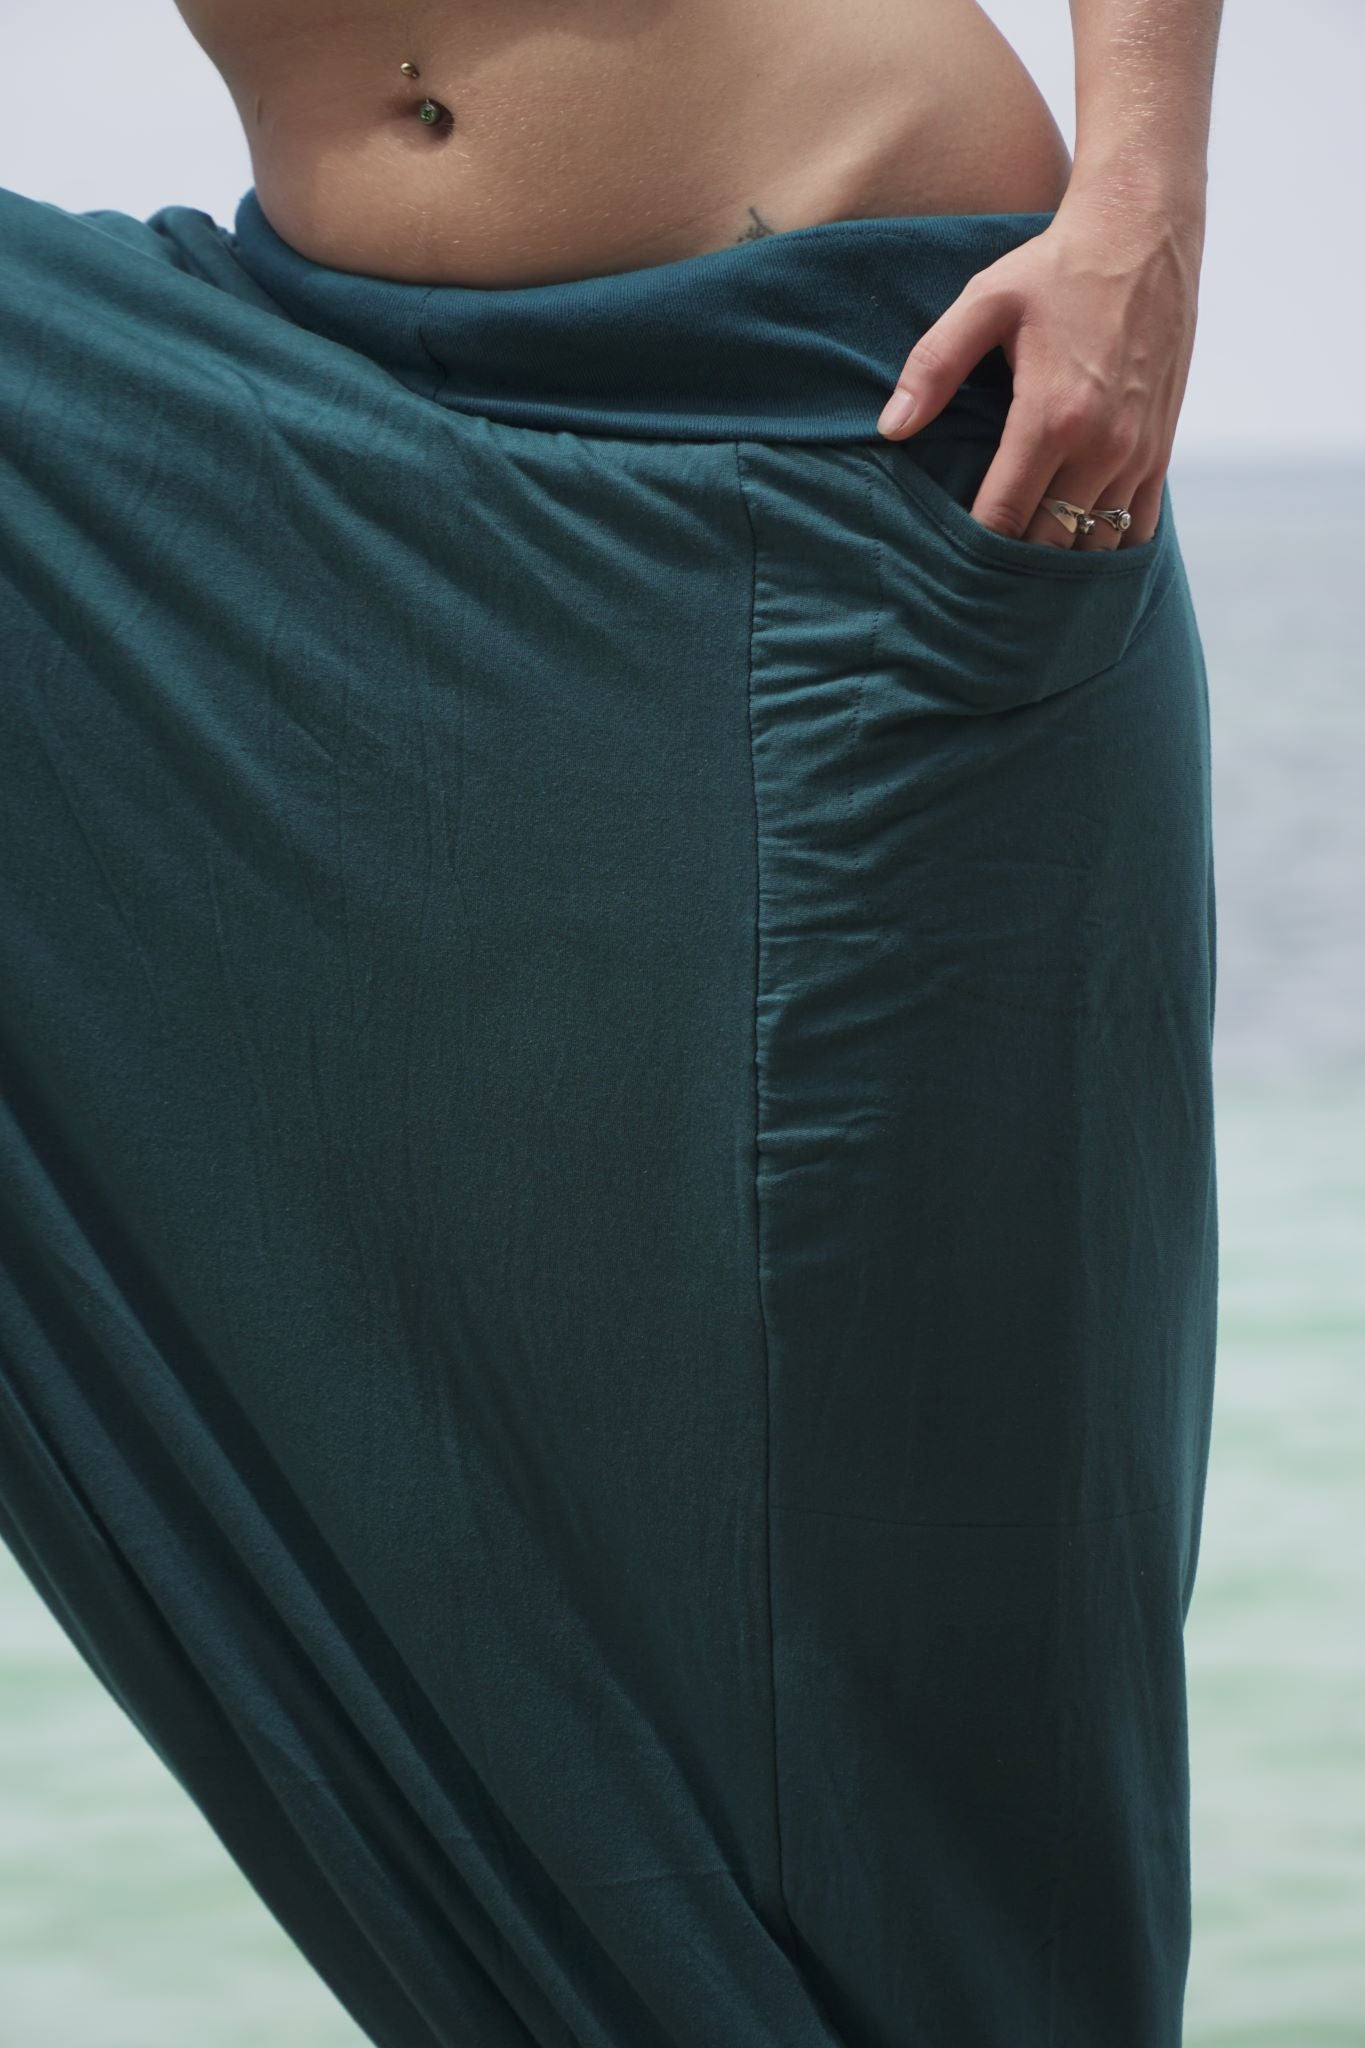 Fleece Lined Harem Pants - Plain - Teal